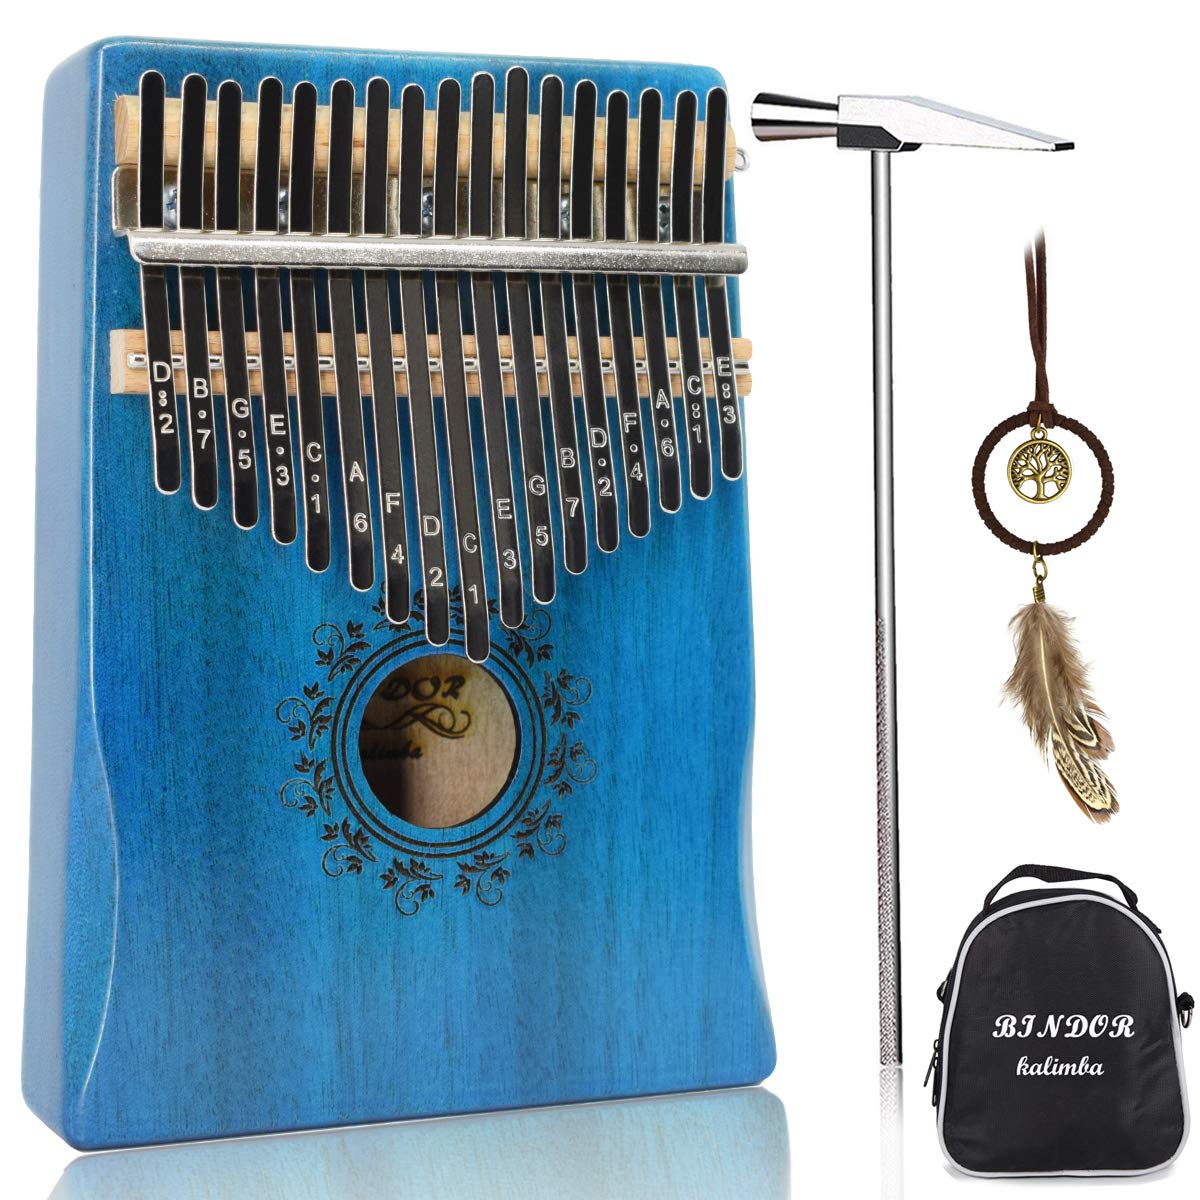 17 Key Kalimba Thumb Piano, Bindor Finger Piano Mbira Kalimba Solid Mahogany Body Portable Easy-to-learn Musical Instrument with Tuning Hammer (Blue) by BinDor